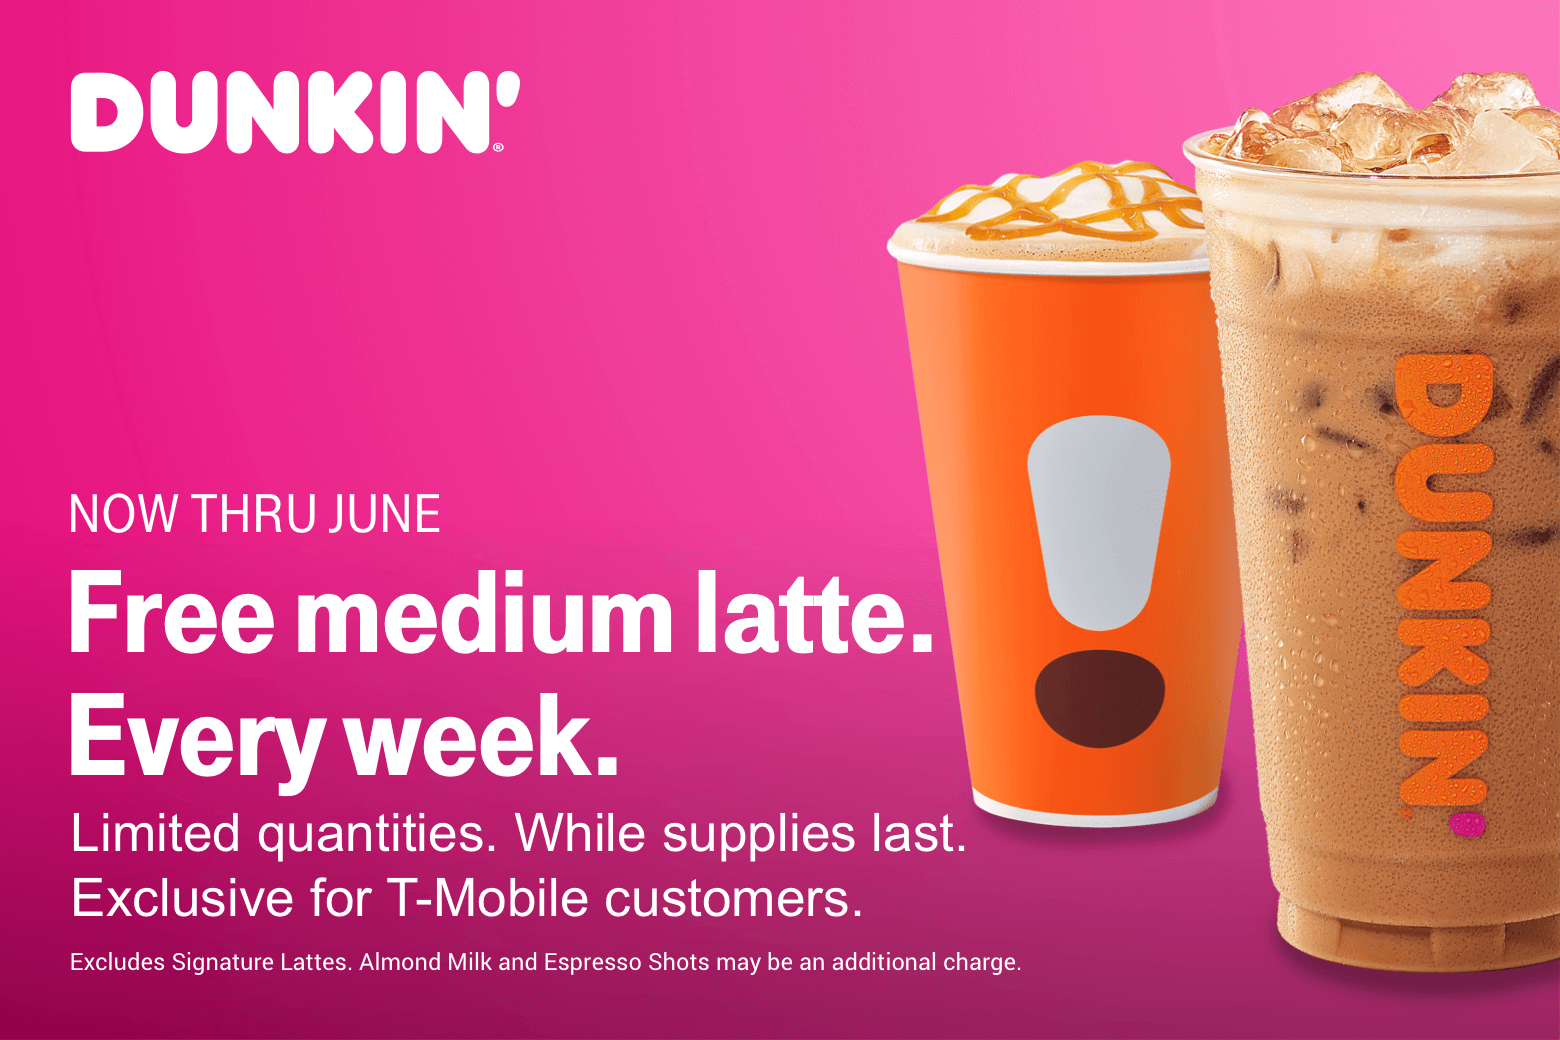 Dunkin'. Now thru June. Free medium latte. Every week. Limited quantities. While supplies last. Exclusive for T-Mobile customers. Excludes signature lattes. Almond milk and espresso shots may be an additional charge.